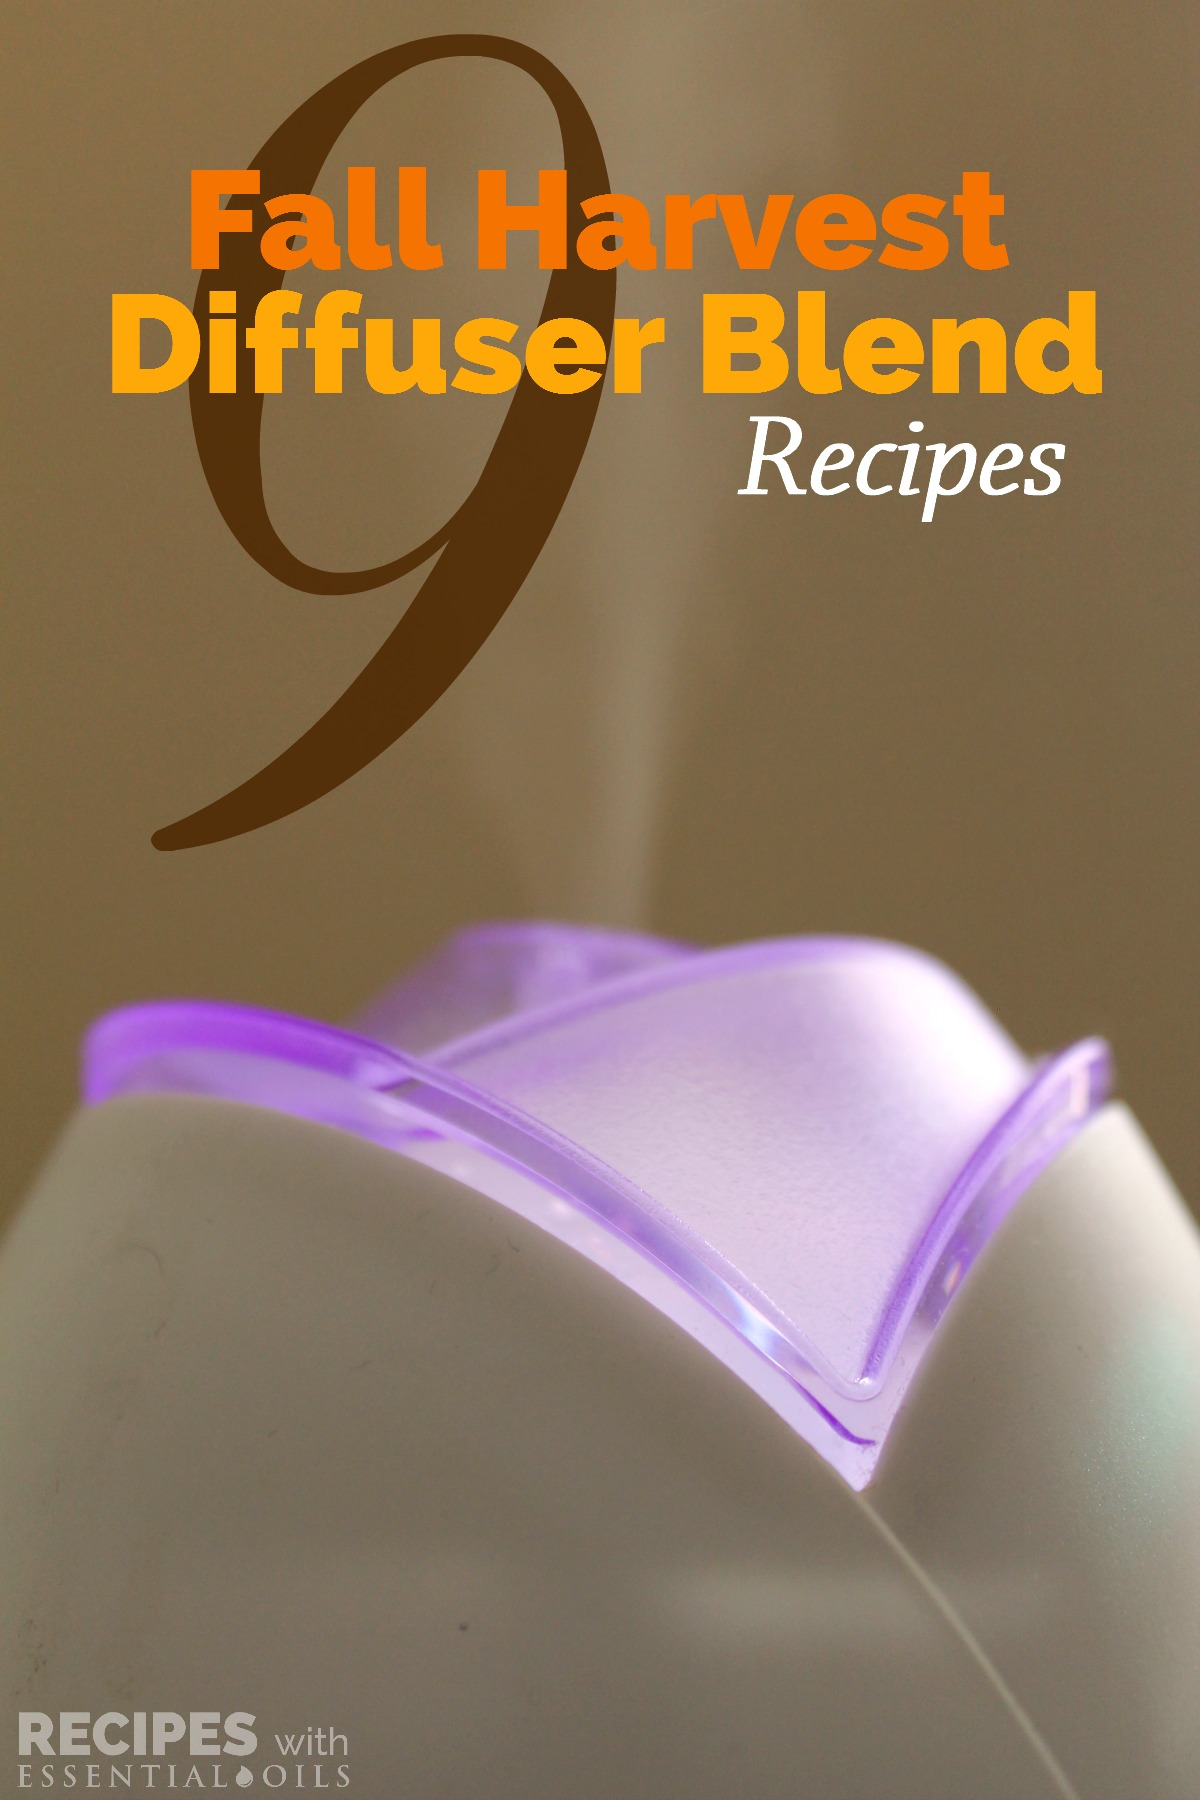 9 Fall Harvest Diffuser Blend Recipes From Recipes With